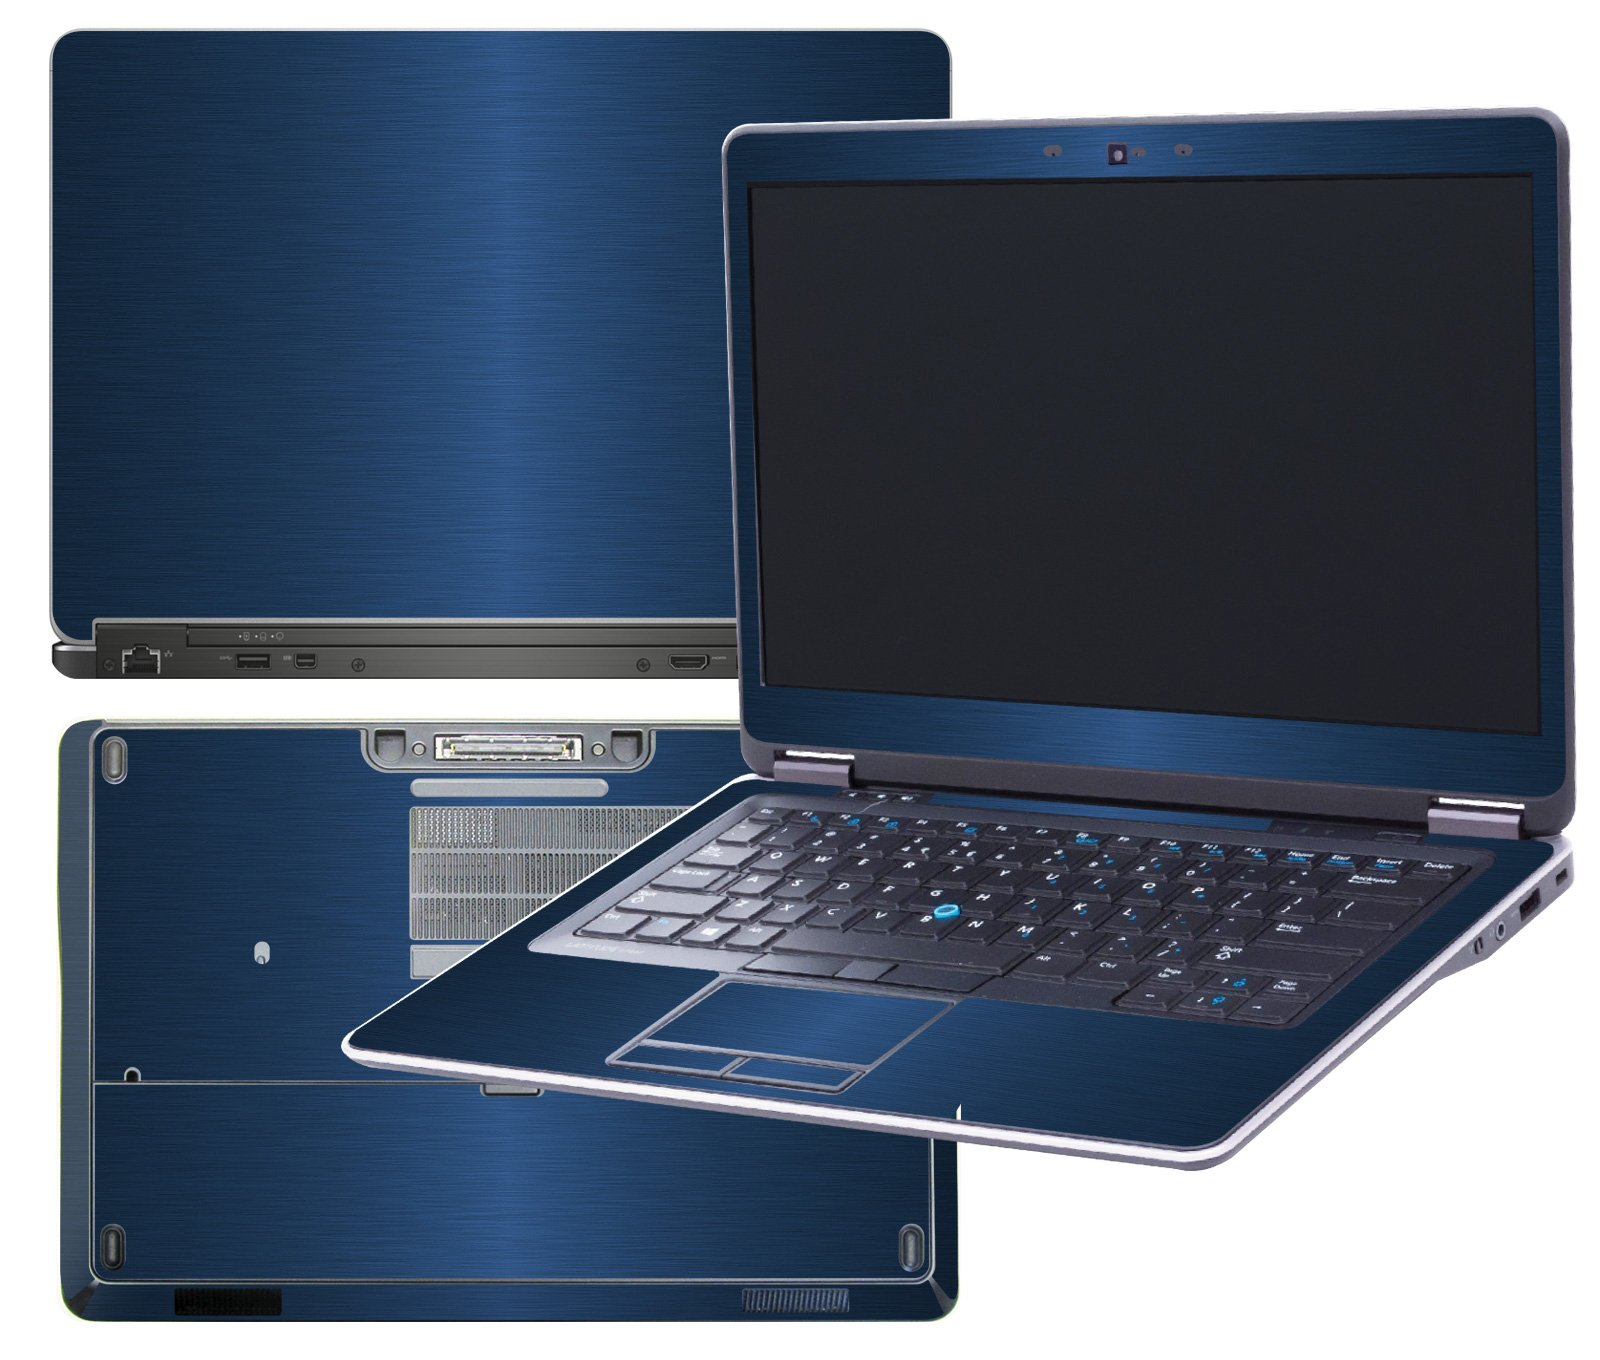 Decalrus - Protective decal for Dell Latitude E7440 (14'' Screen) laptop BLUE Texture Brushed Aluminum skin skins decal for case cover wrap BAlatitudeE7440Blue